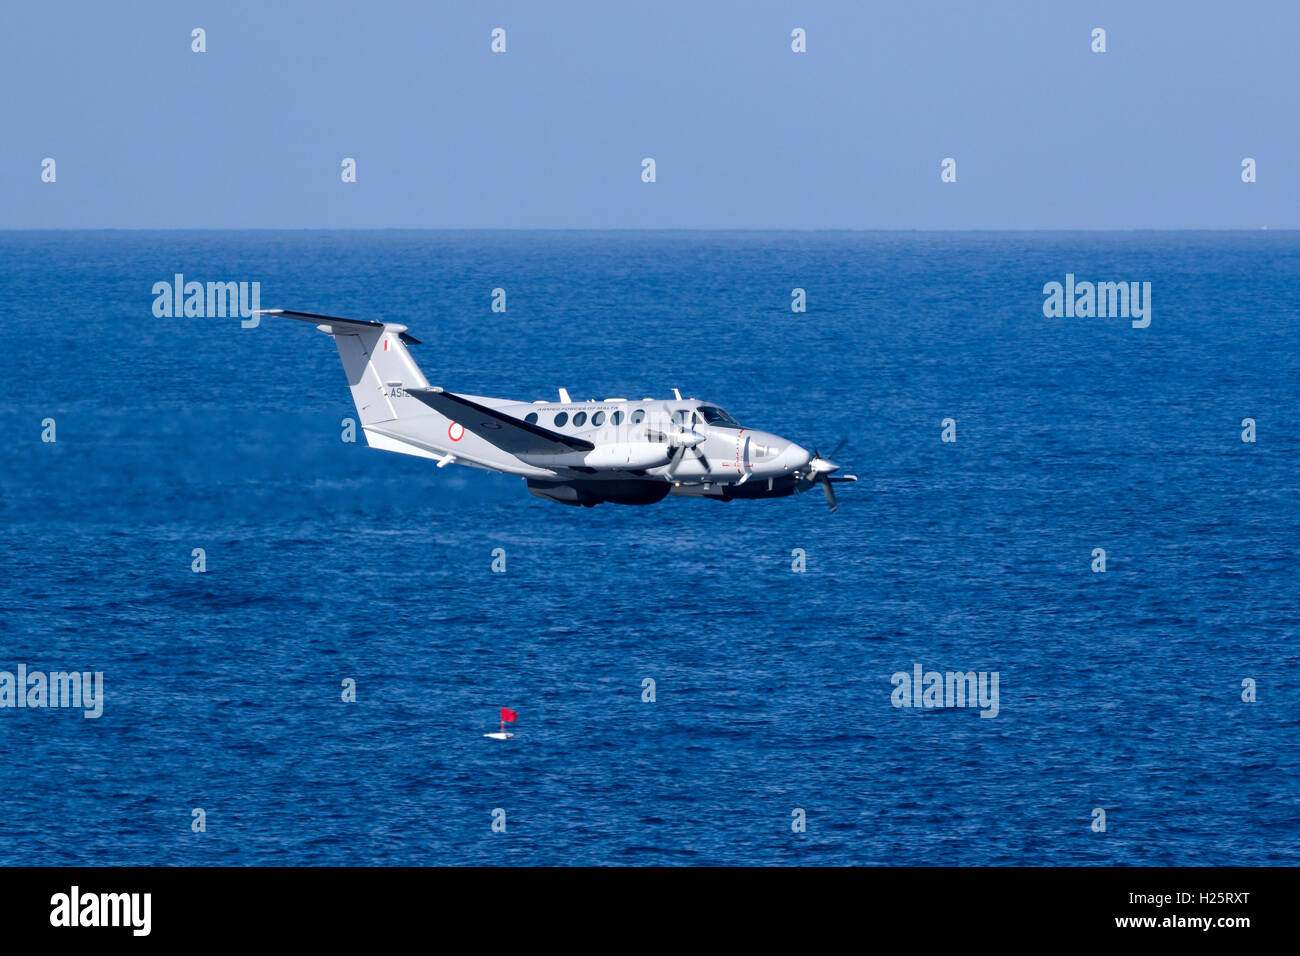 Malta Armed Forces Hawker Beechcraft B200 King Air [AS1227] performing a low pass over the sea. - Stock Image